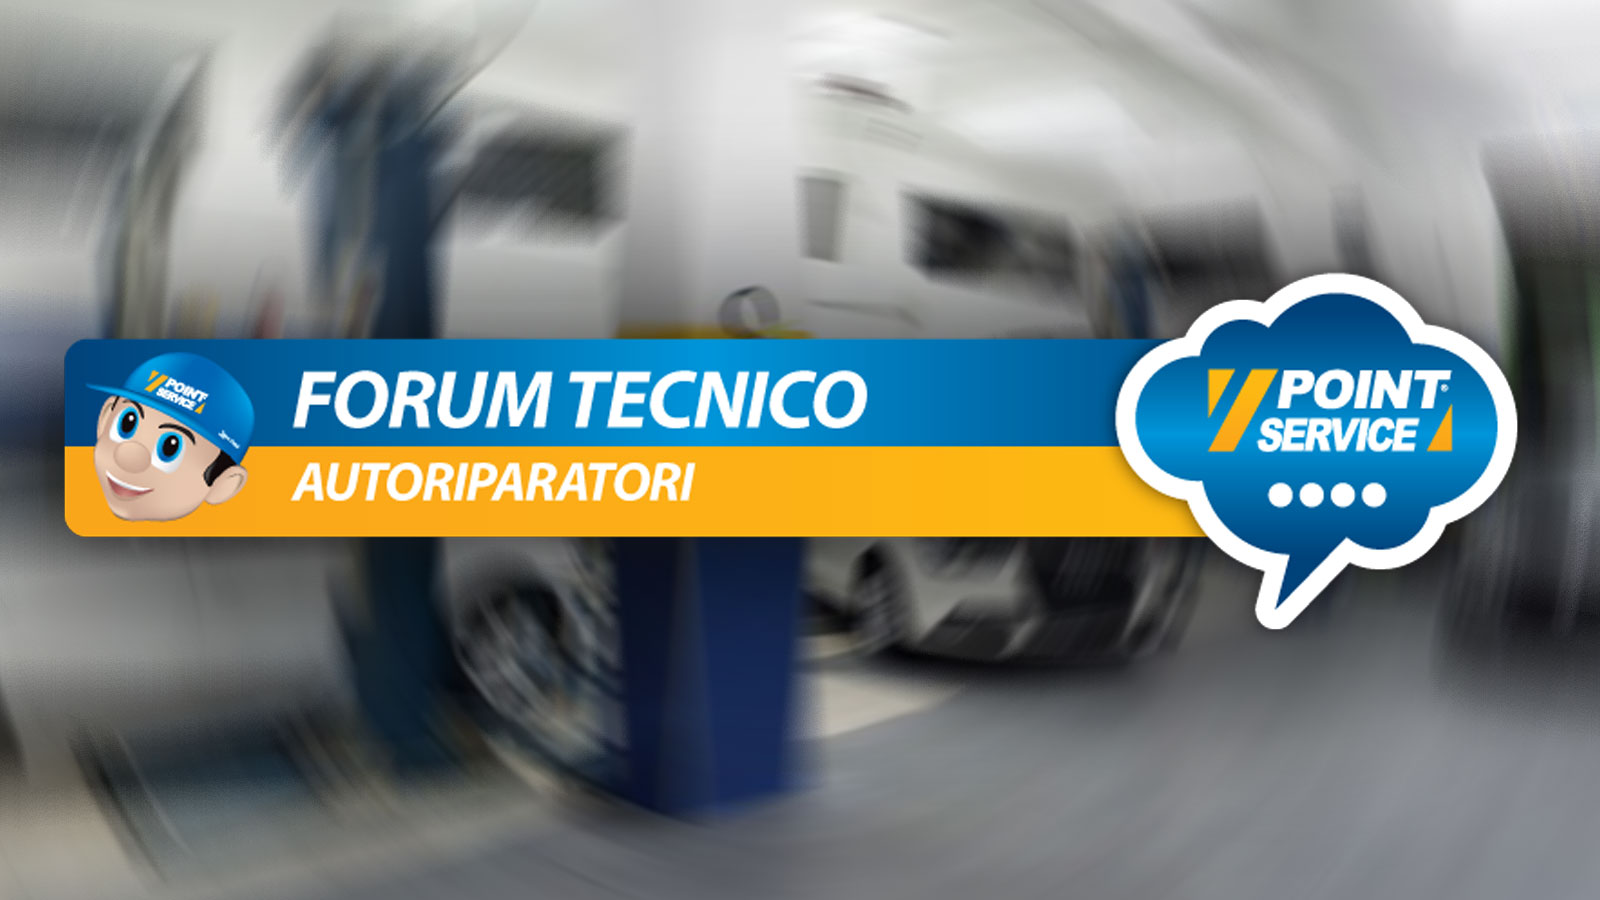 forum-tecnico-pointservice